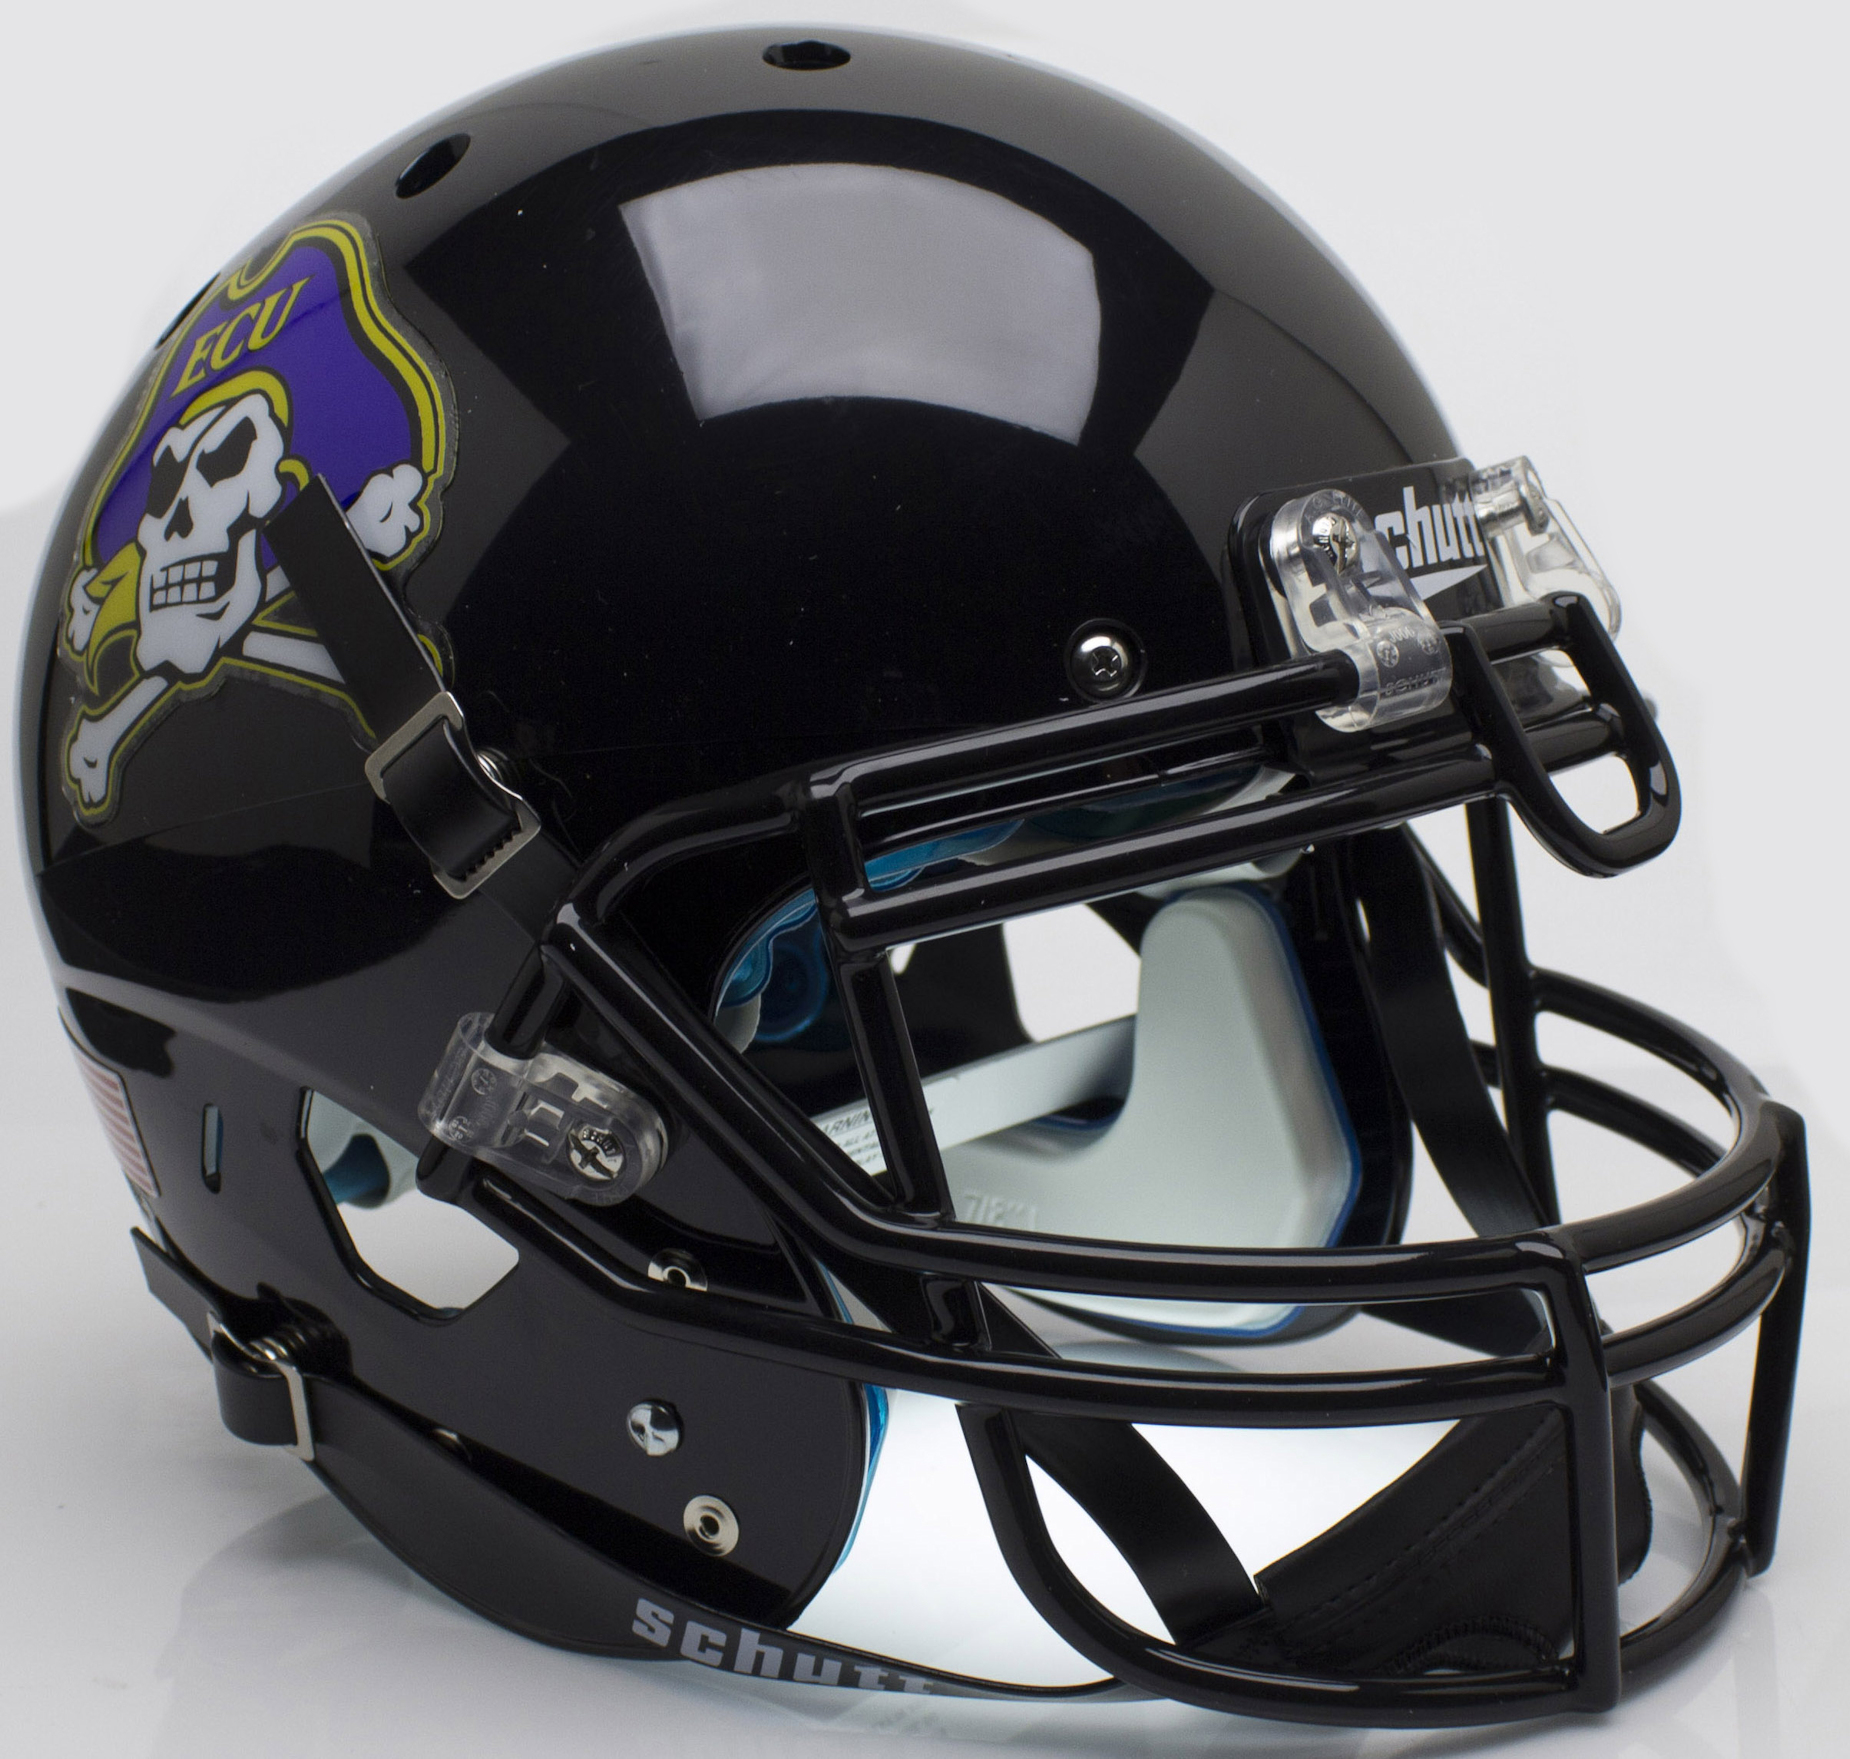 East Carolina Pirates Authentic College XP Football Helmet Schutt <B>Black</B>